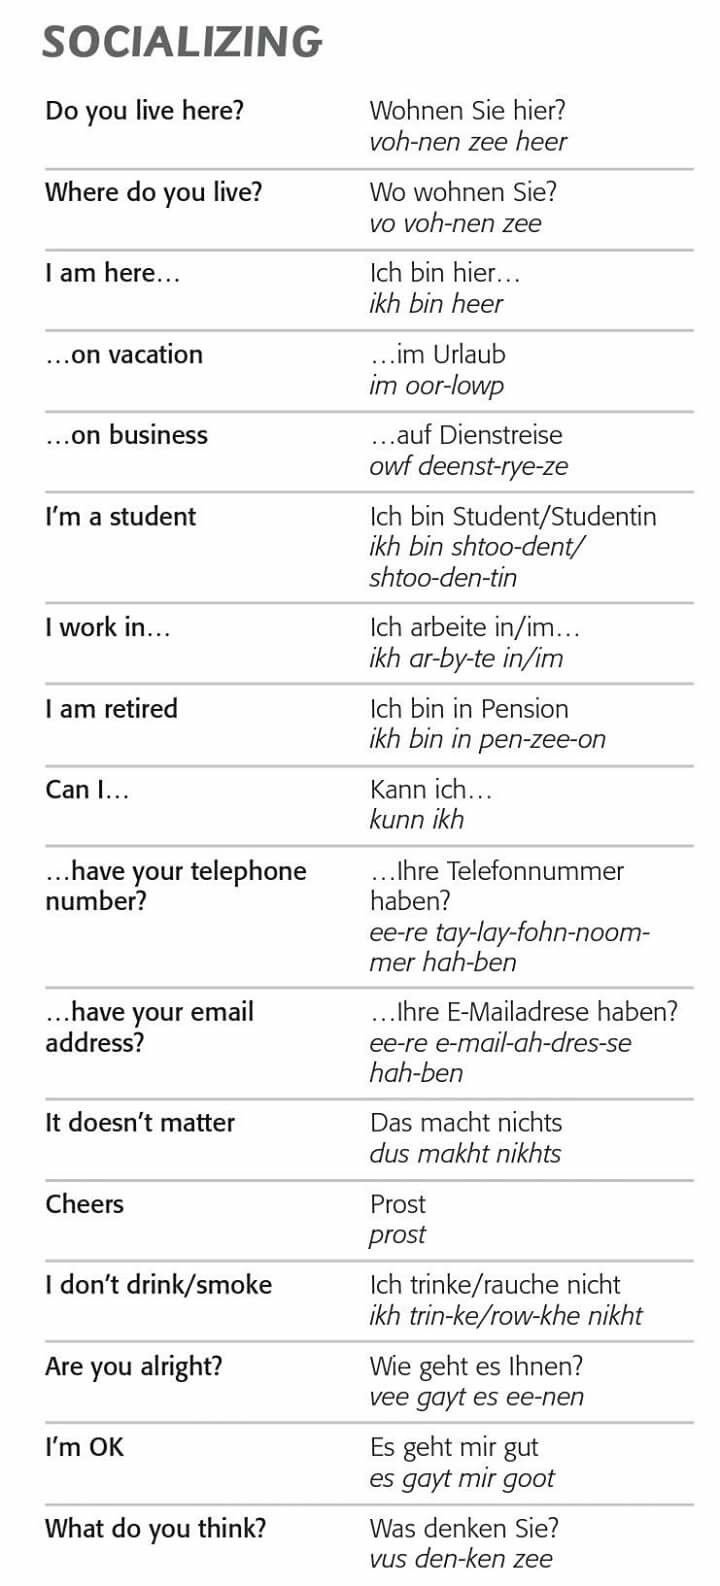 worksheet Spanish To English Worksheets pin by fluency spot learn spanish english russian on how to the greetings